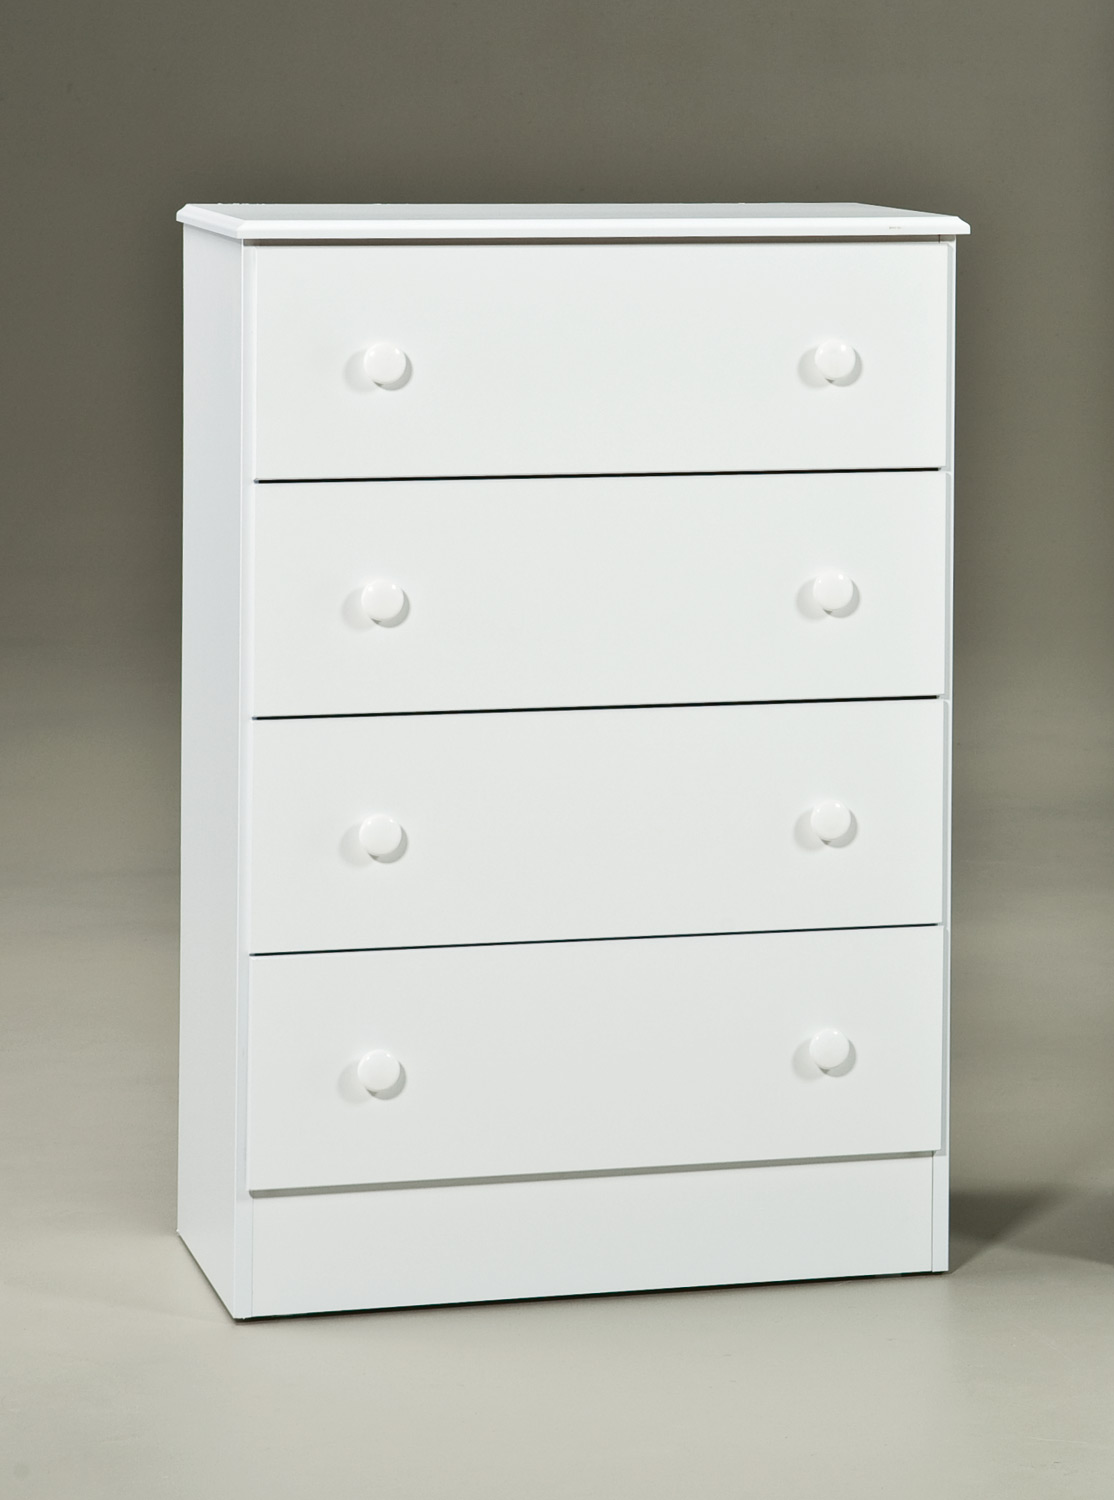 Kith Furniture White 4 Drawer Chest